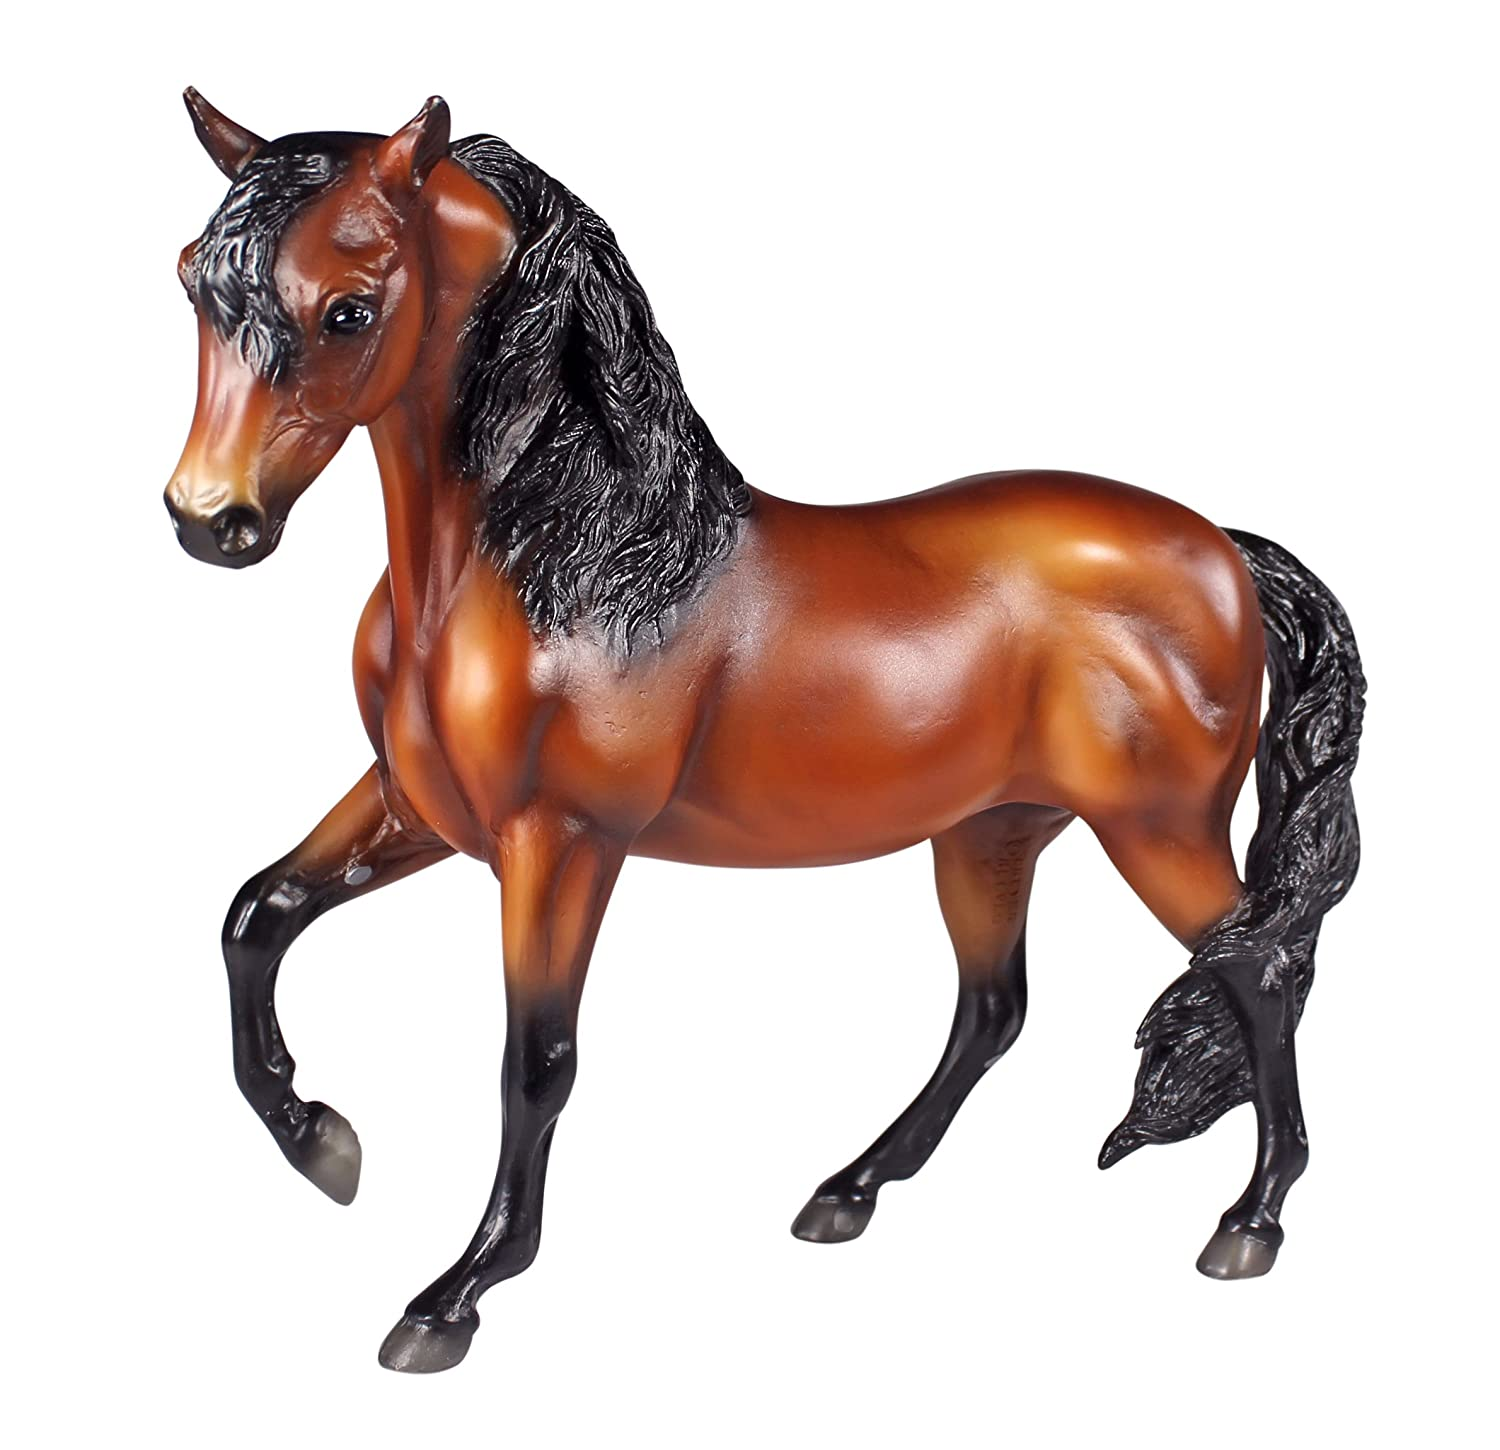 Breyer 1 9 Traditional Series Model Horse  PVF Peace of Mind